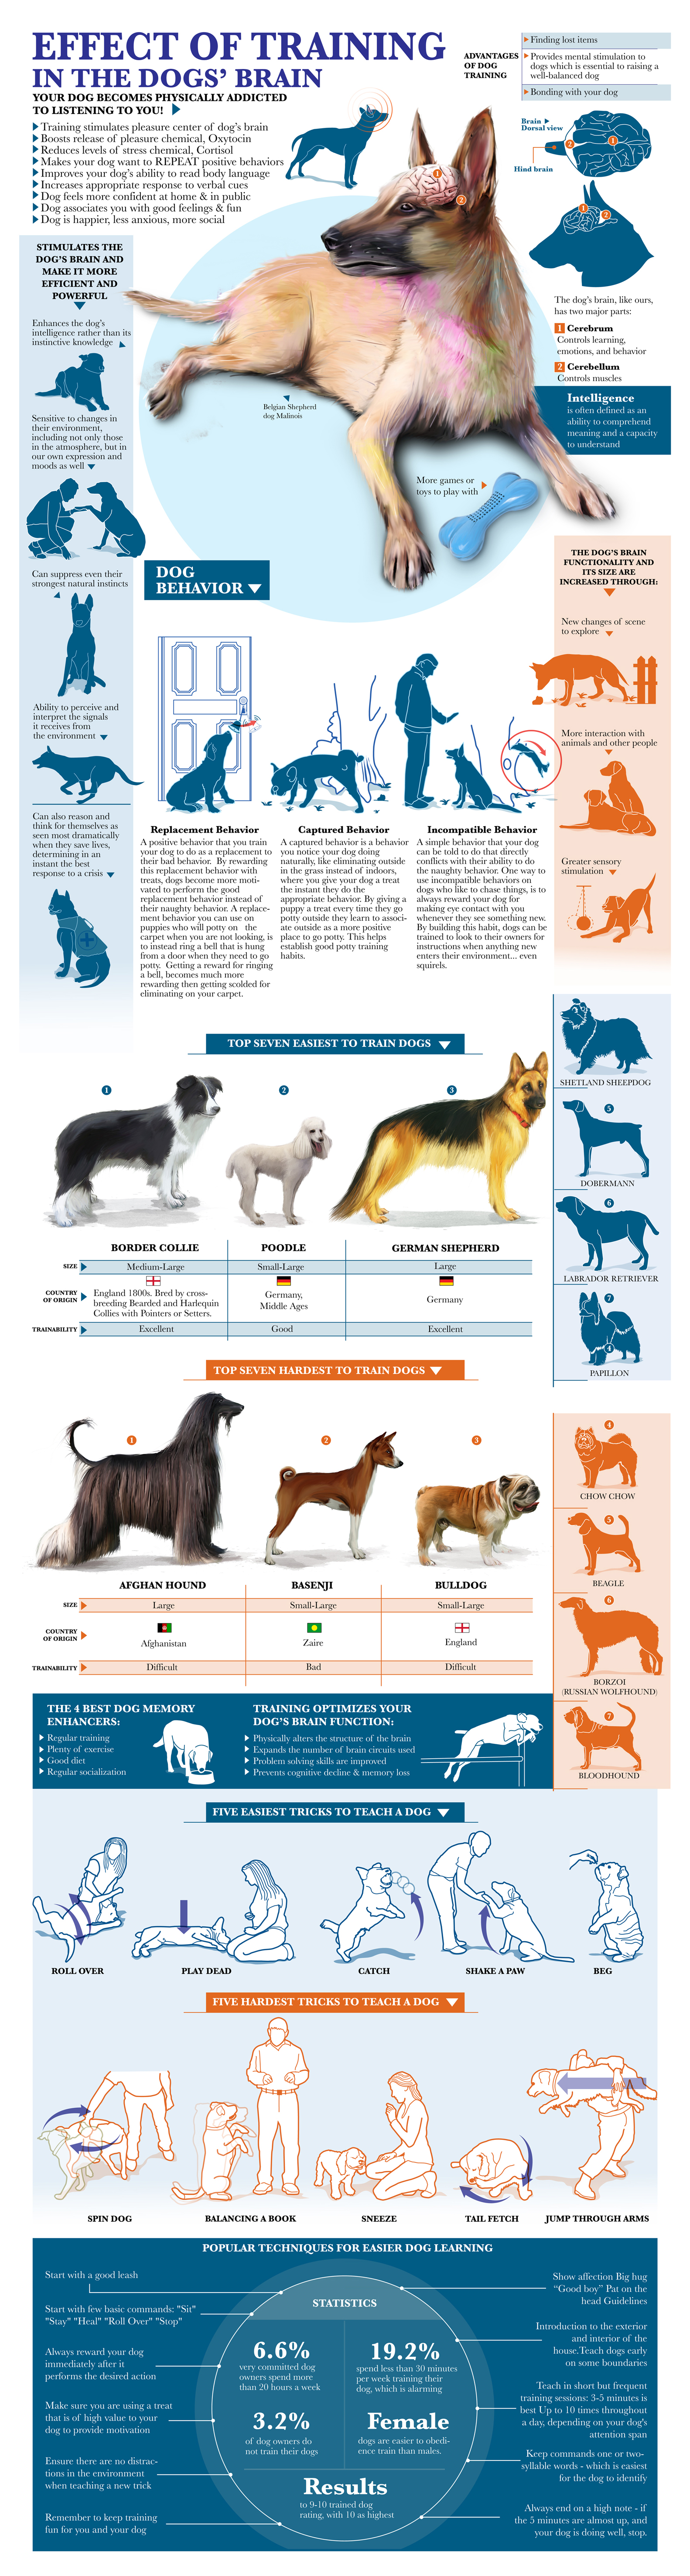 effect-of-training-in-the-dog-brain primal canine dog training.jpg